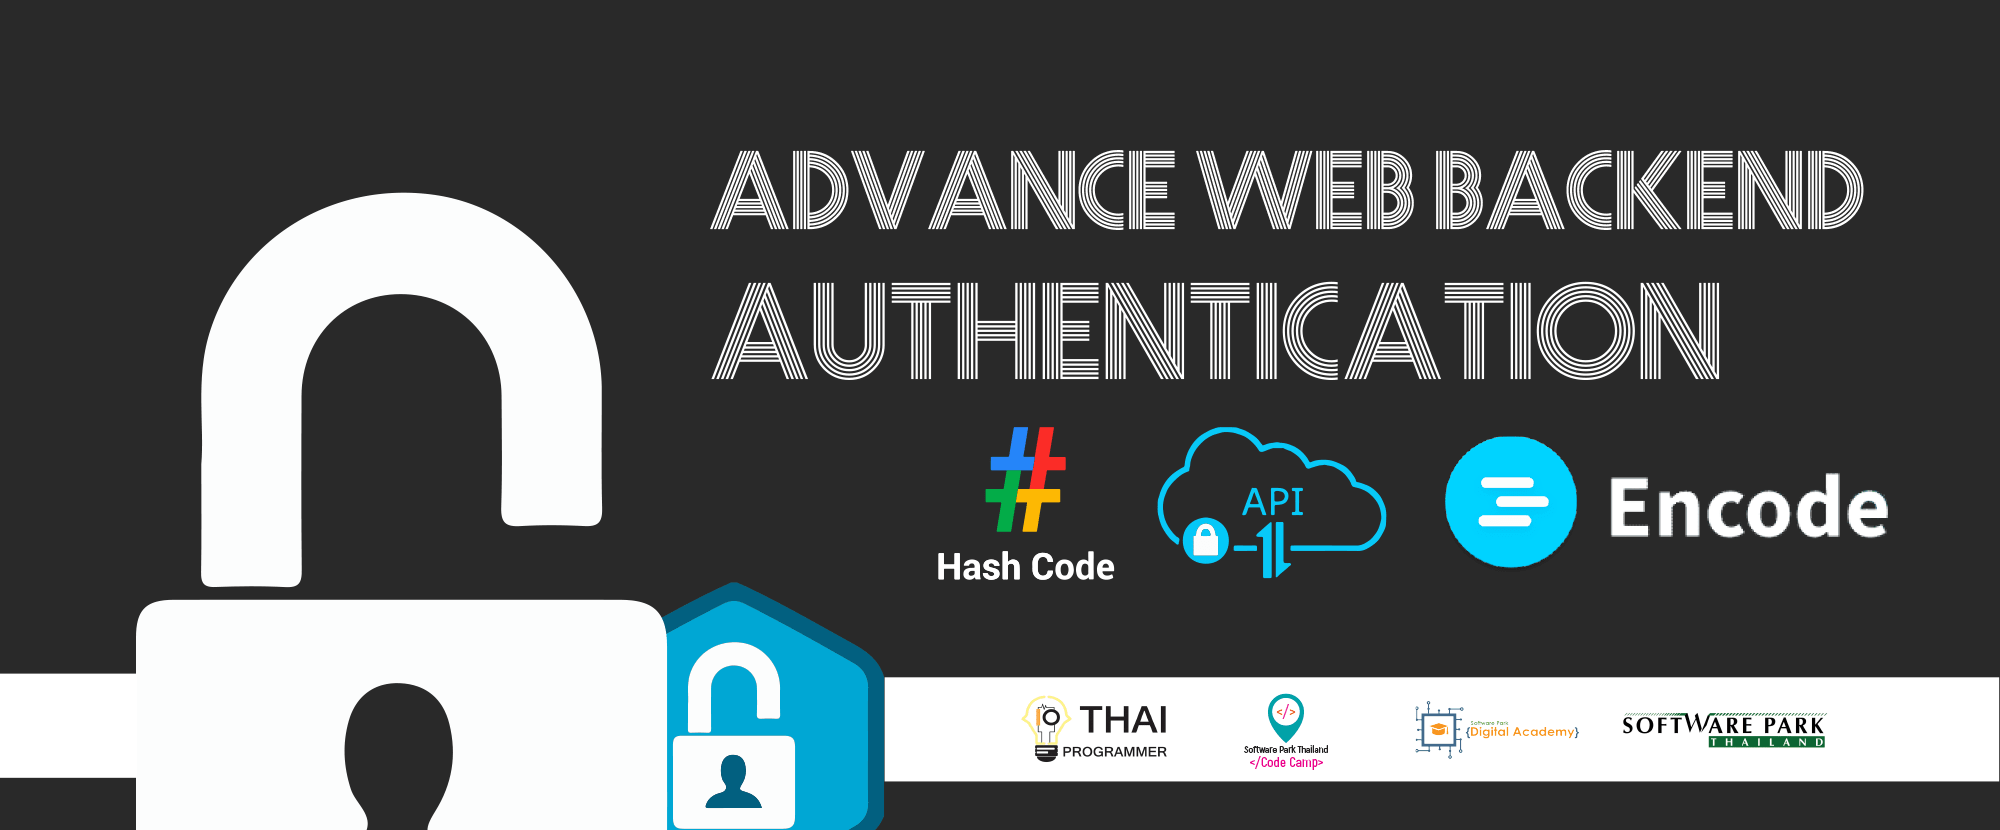 Advance Web Backend, Authentication AdvanceWebBackend